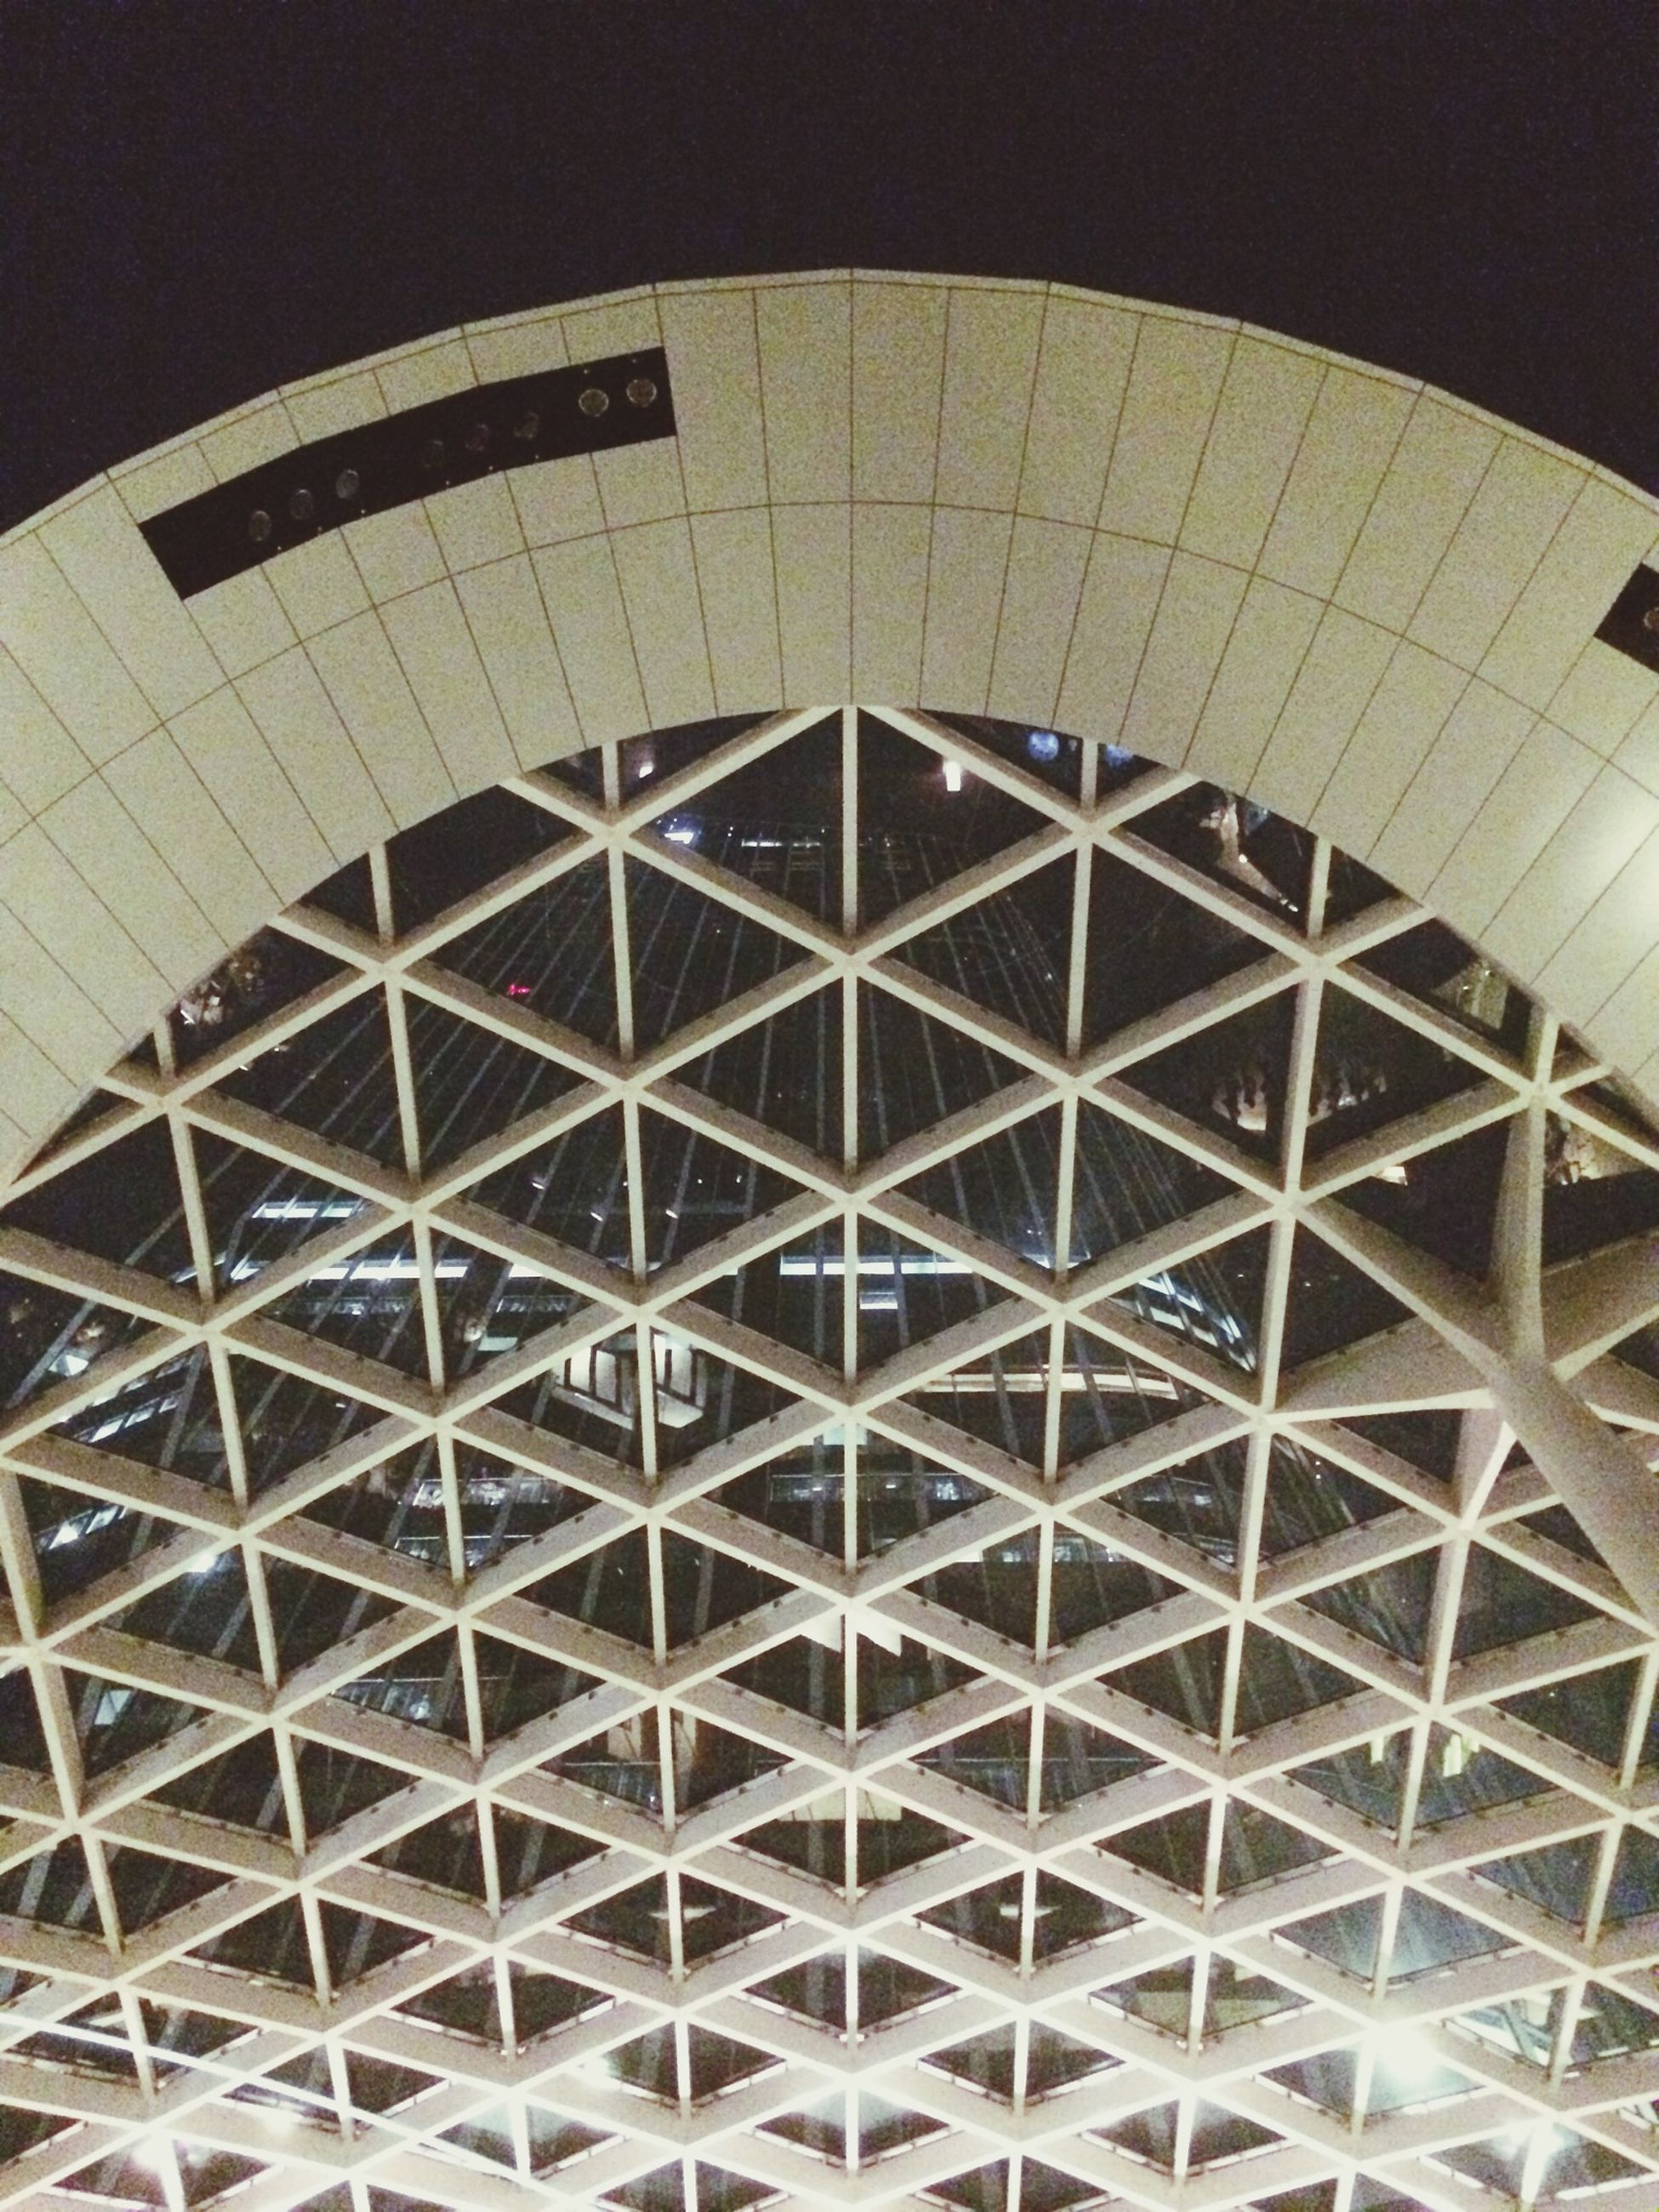 architecture, built structure, low angle view, pattern, indoors, illuminated, ceiling, full frame, backgrounds, geometric shape, modern, building exterior, architectural feature, design, repetition, night, no people, building, shape, circle